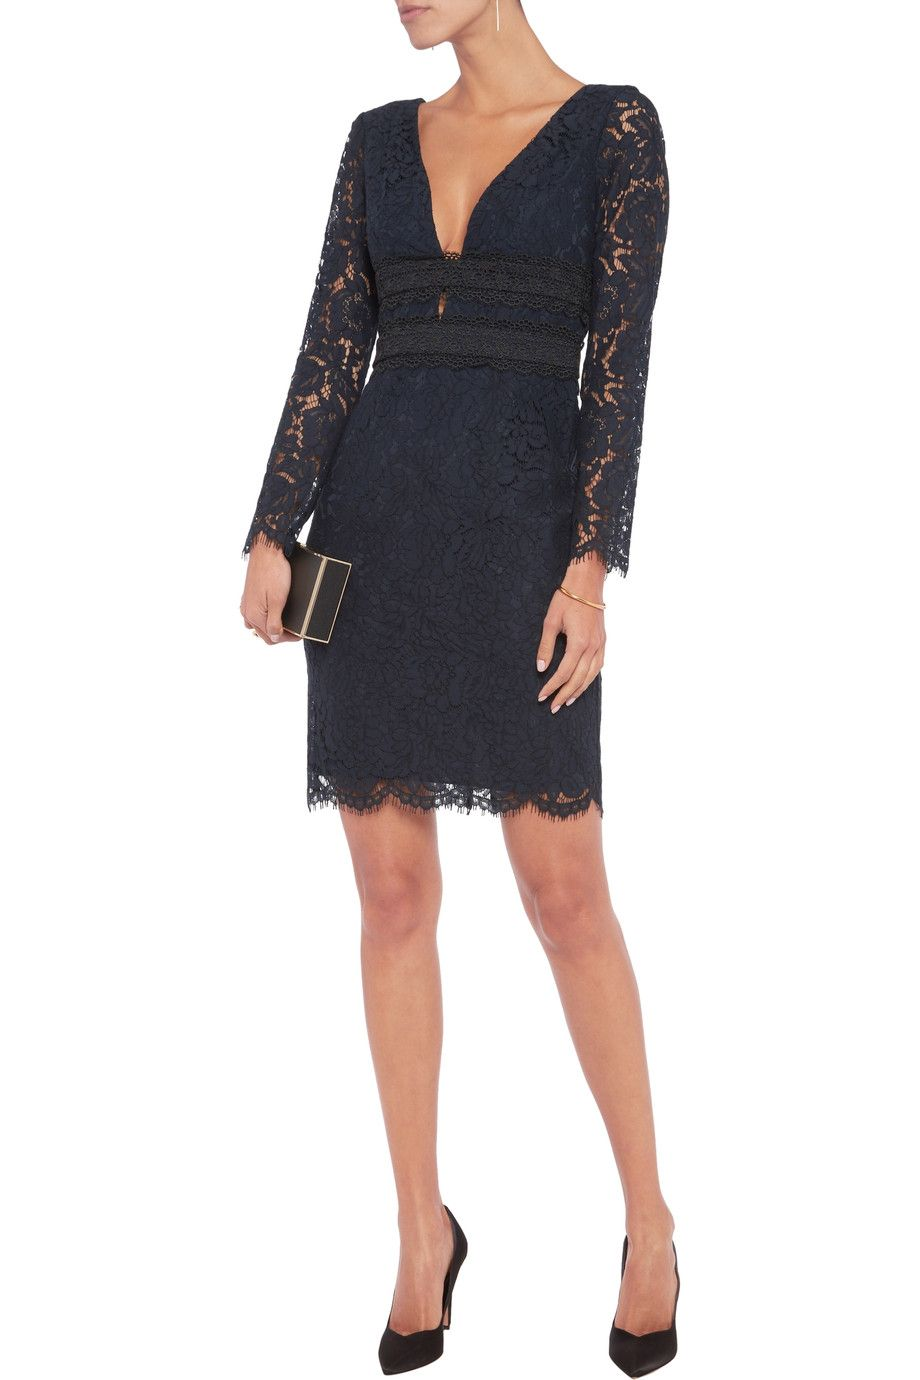 defe2f4317489 Shop on-sale Diane von Furstenberg Viera macramé lace-paneled corded lace  dress. Browse other discount designer Dresses   more on The Most  Fashionable ...